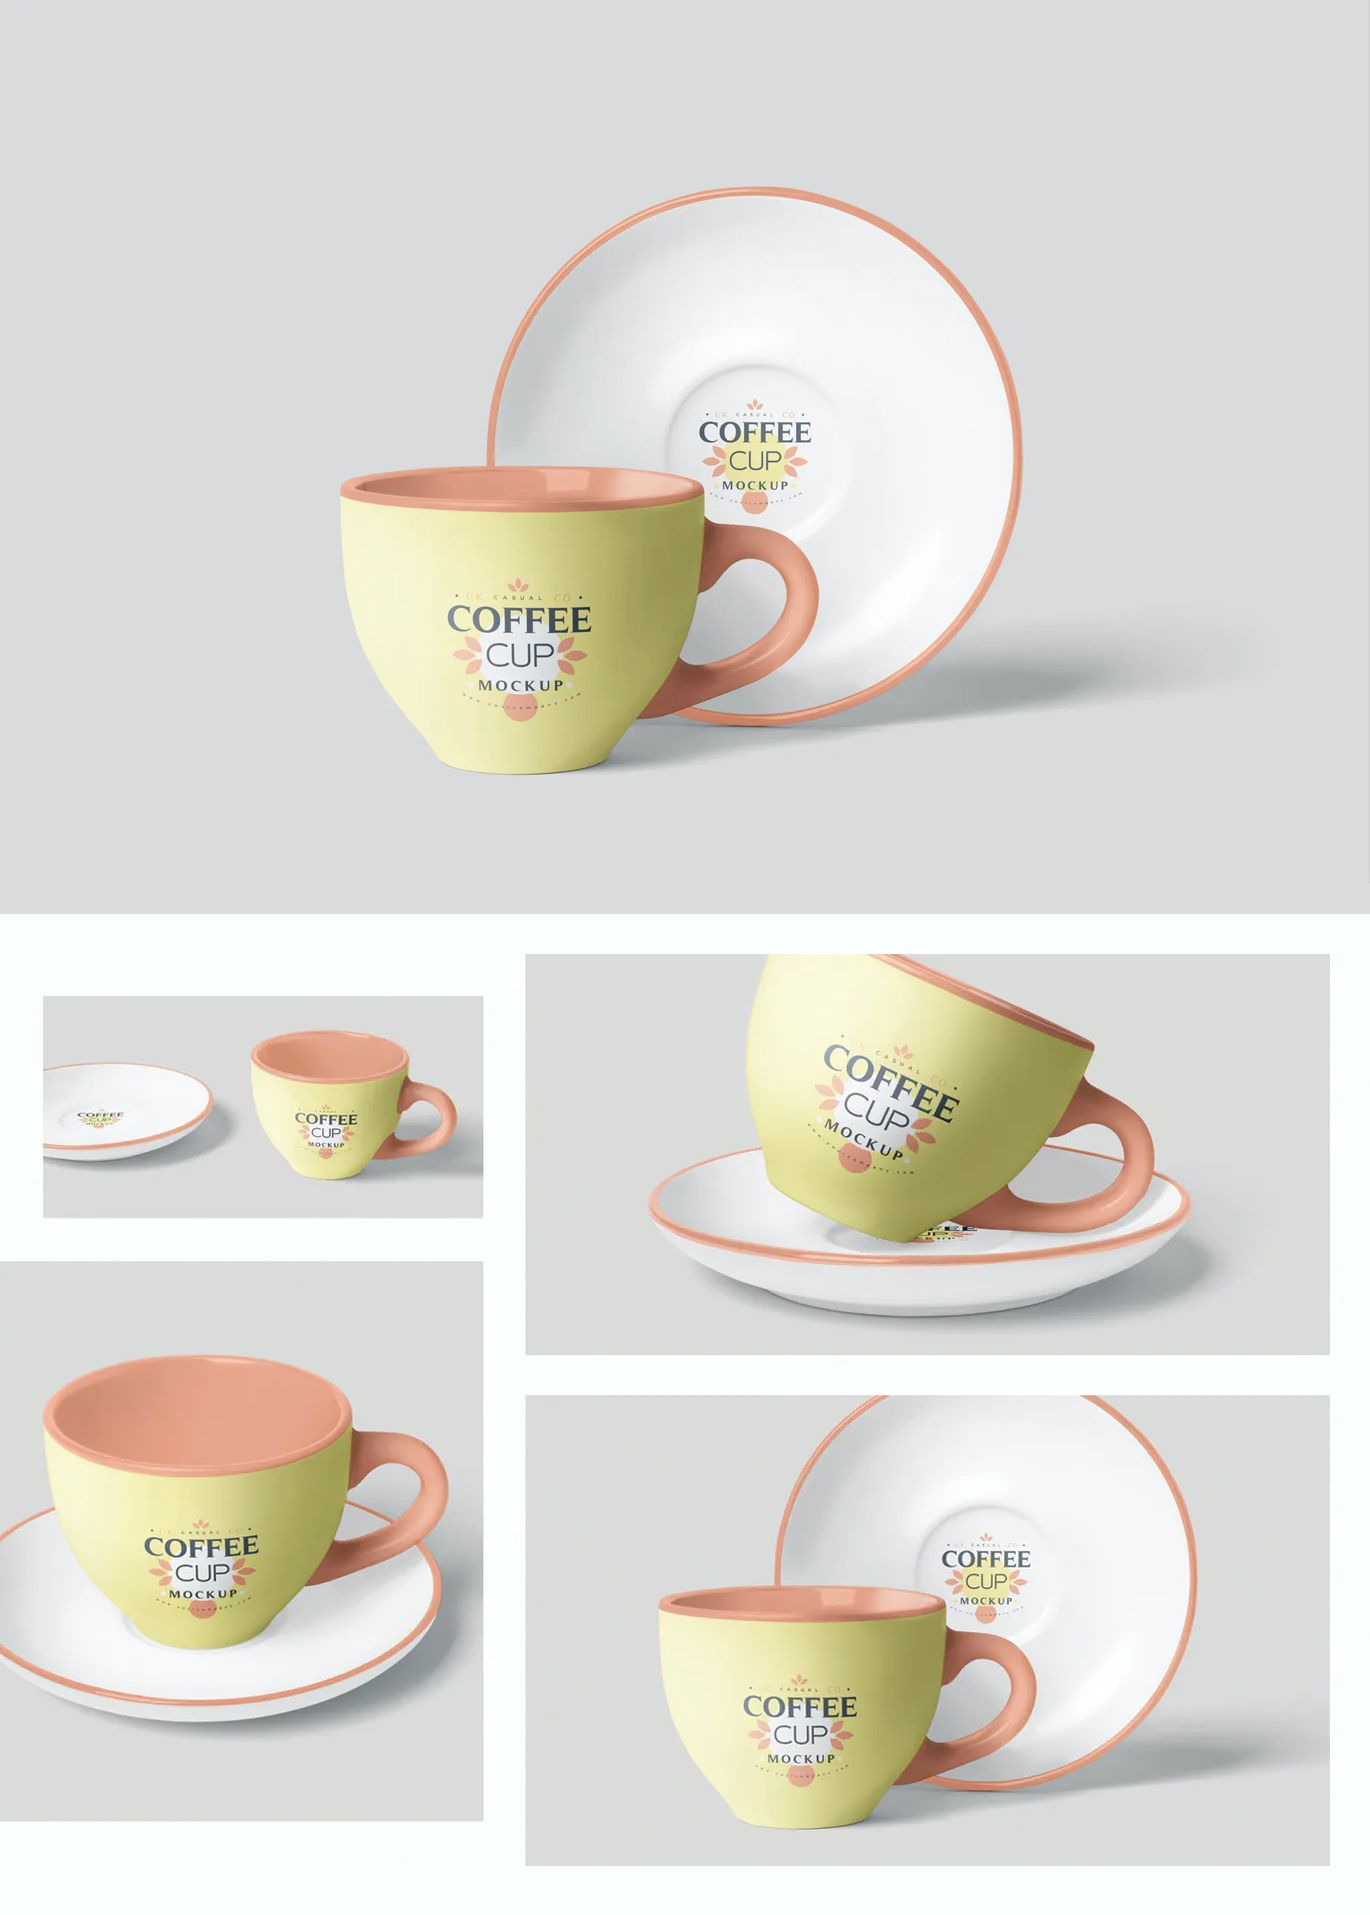 Coffee Cup Mockup Set With Saucer Cup Coffee Cups Saucer